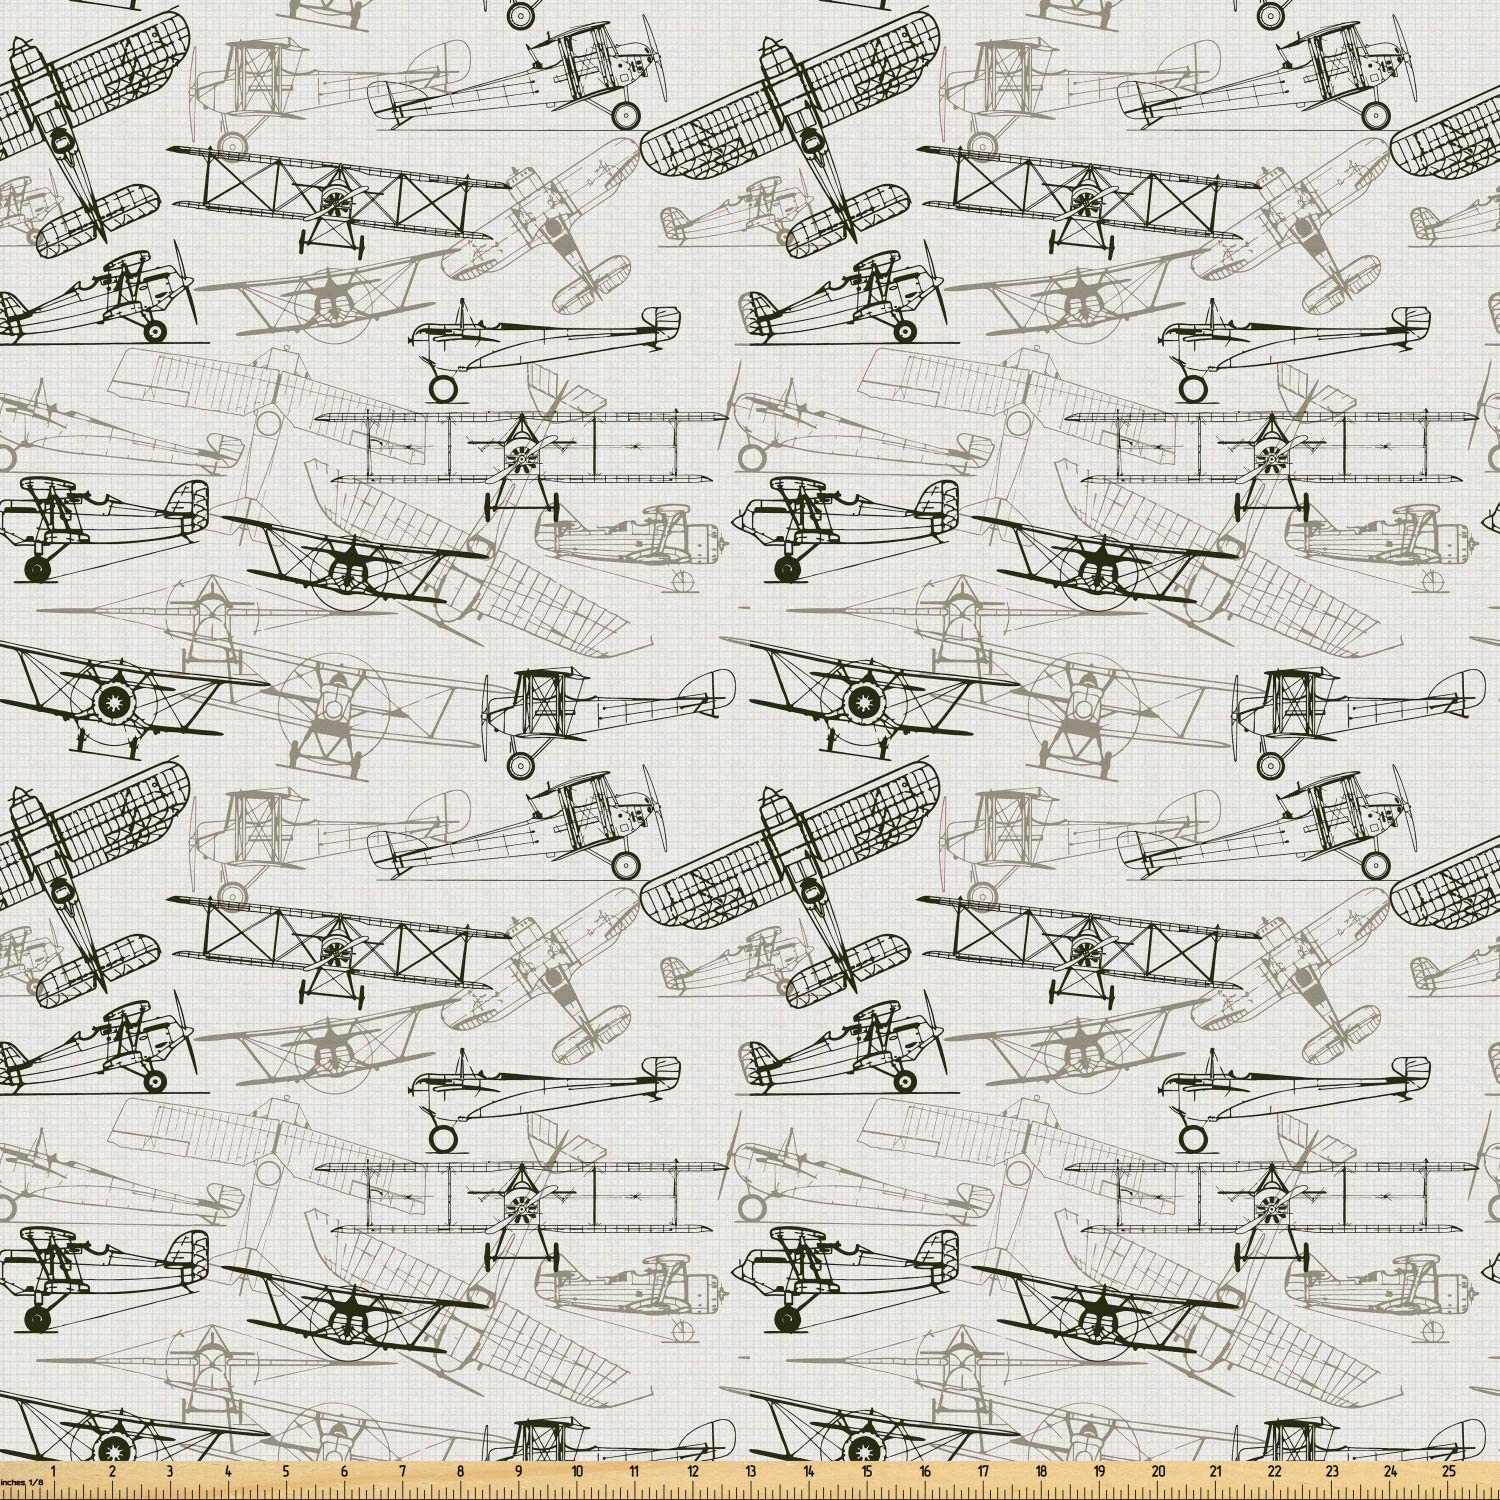 Ambesonne Airplane Fabric by The Yard, Old Fashioned Transportation Hand Drawn Style Vintage Pattern, Microfiber Fabric for Arts and Crafts Textiles & Decor, 5 Yards, Olive Green